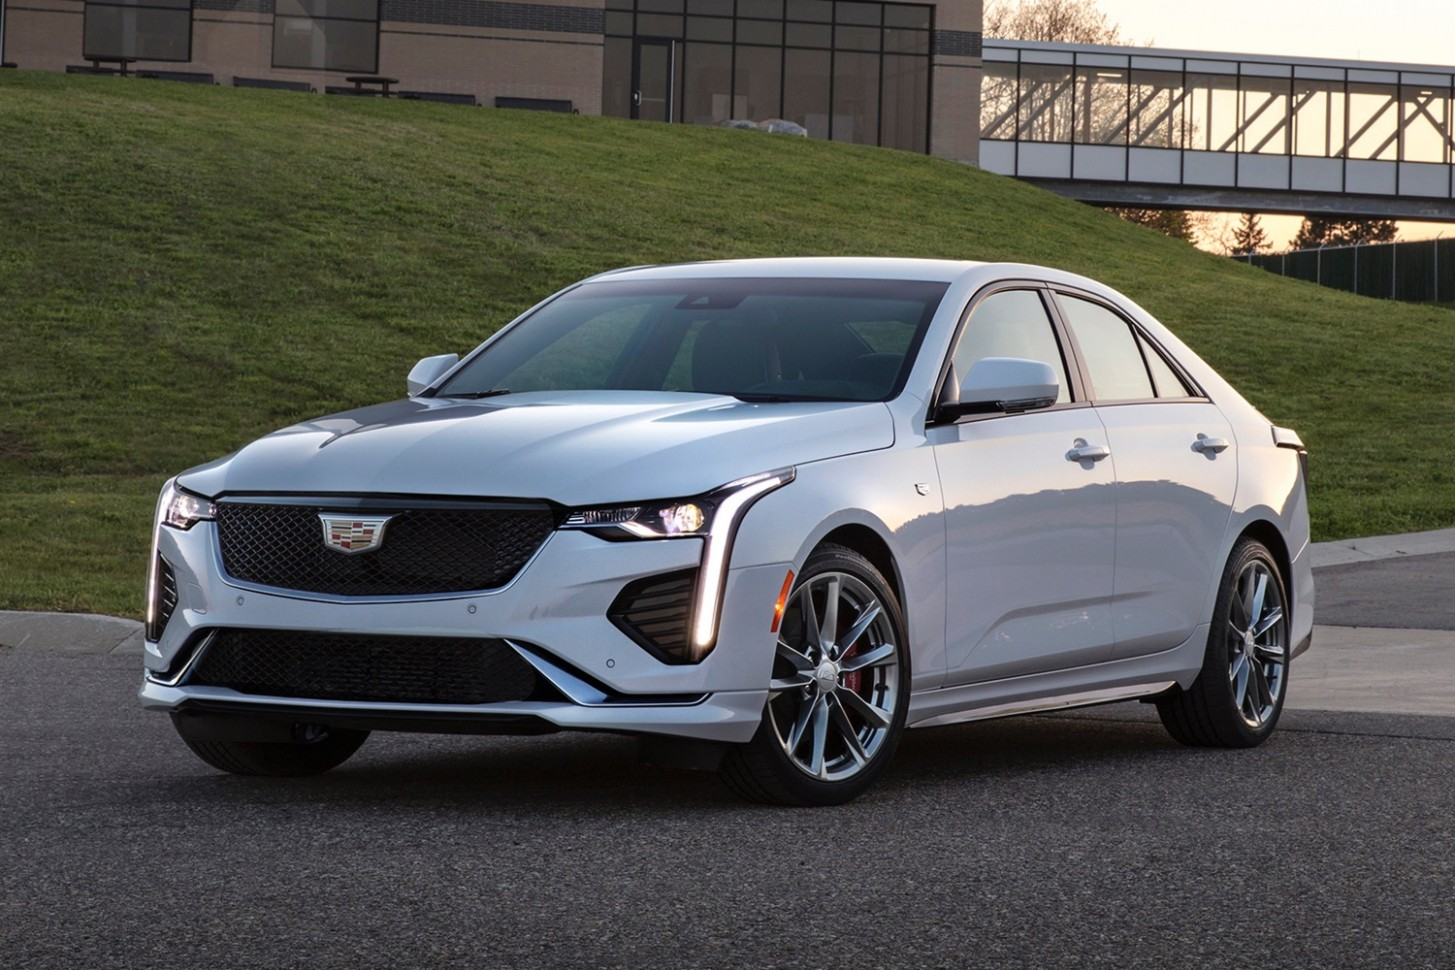 5 Cadillac CT5 Info, Availability, Specs, Wiki GM Authority - Cadillac Ct4 2021